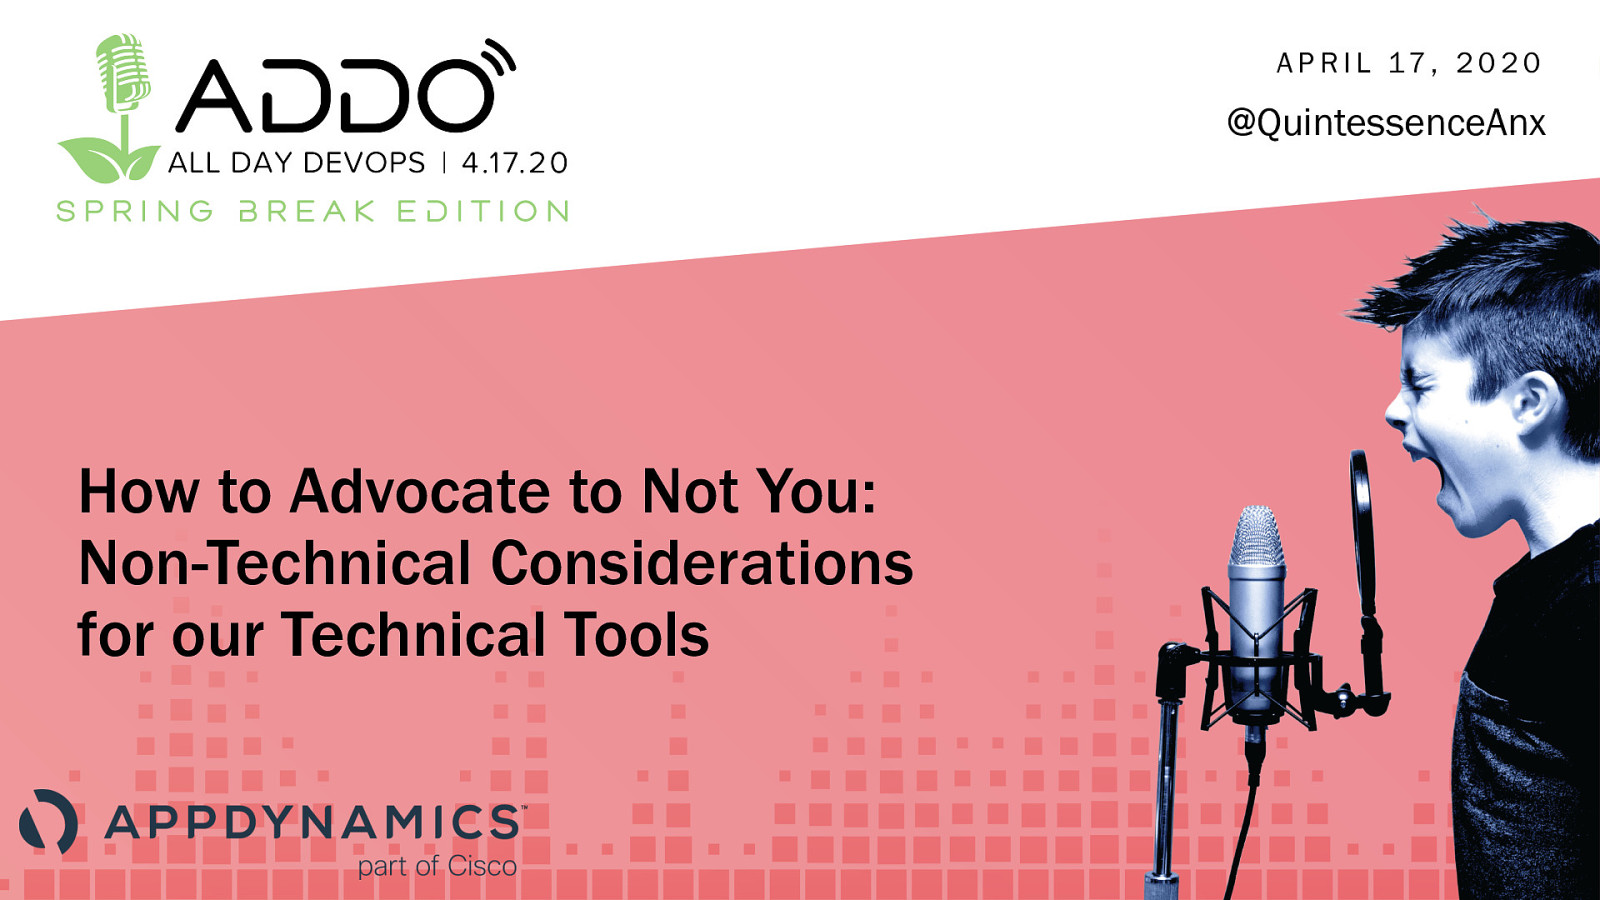 How to Advocate to Not You: Non-Technical Considerations for our Technical Tools